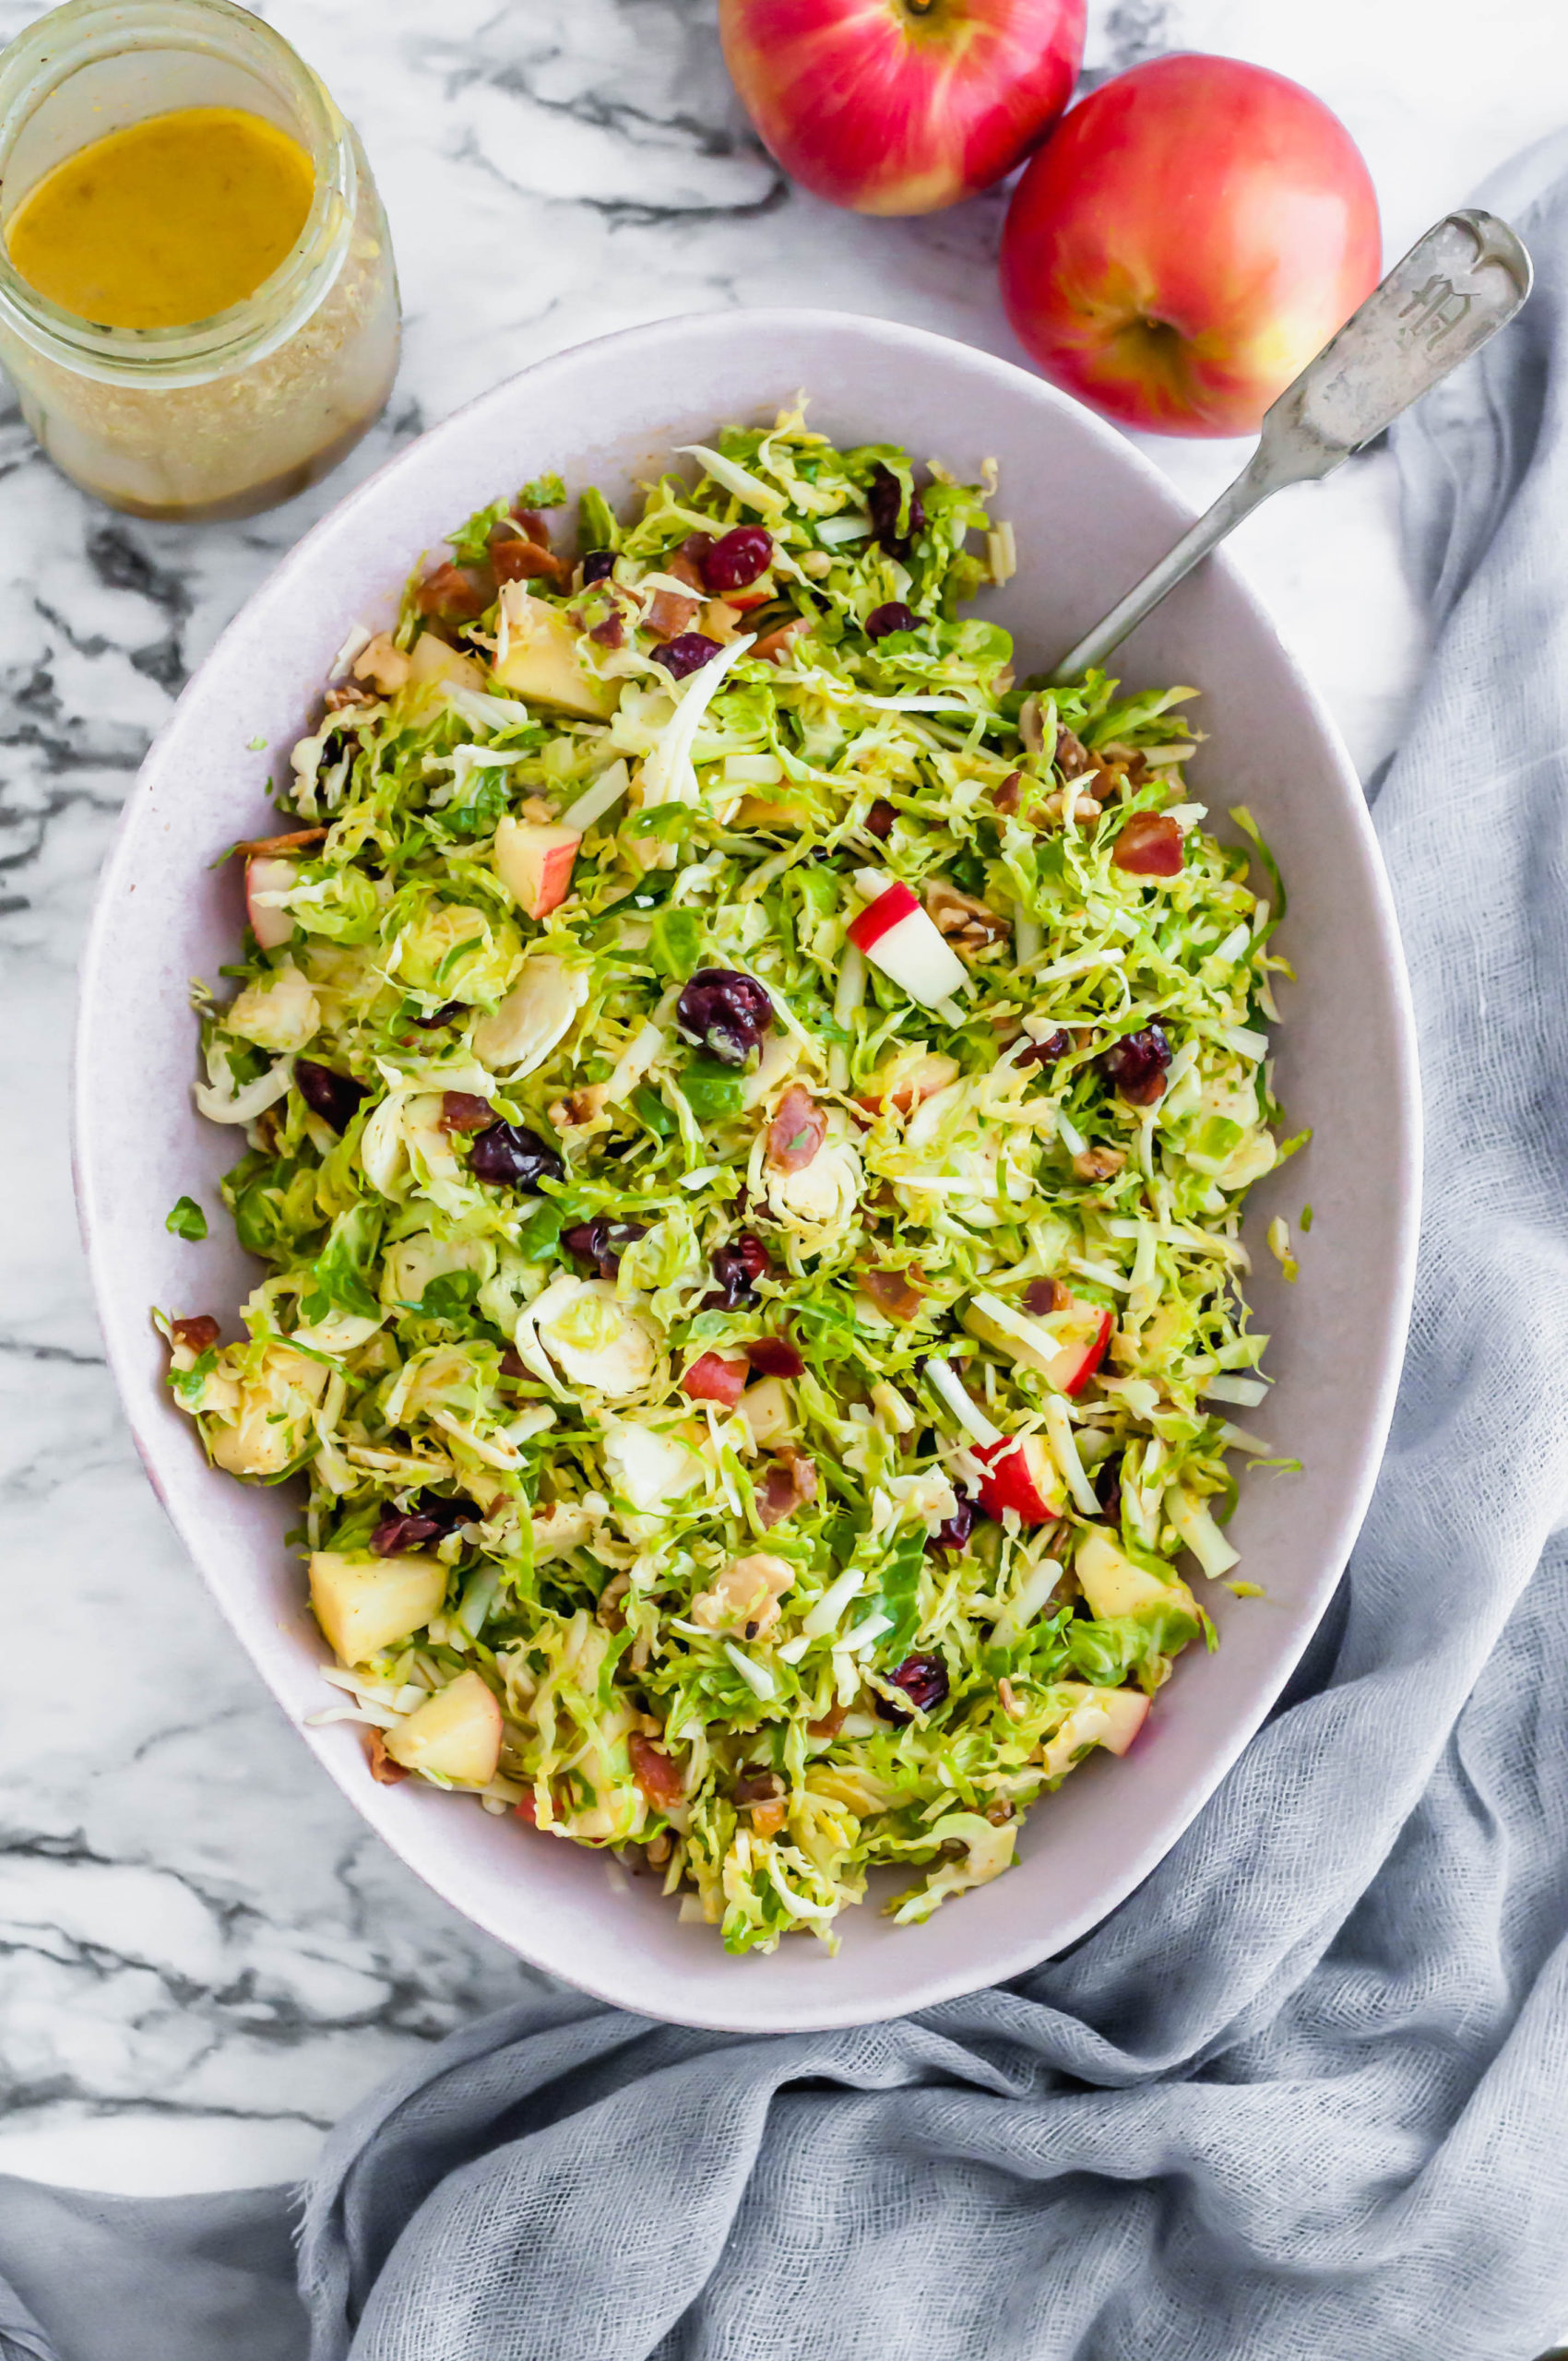 This Shaved Brussels Sprouts Salad is the perfect addition to your Thanksgiving table. It's bringing all the fresh fall vibes.